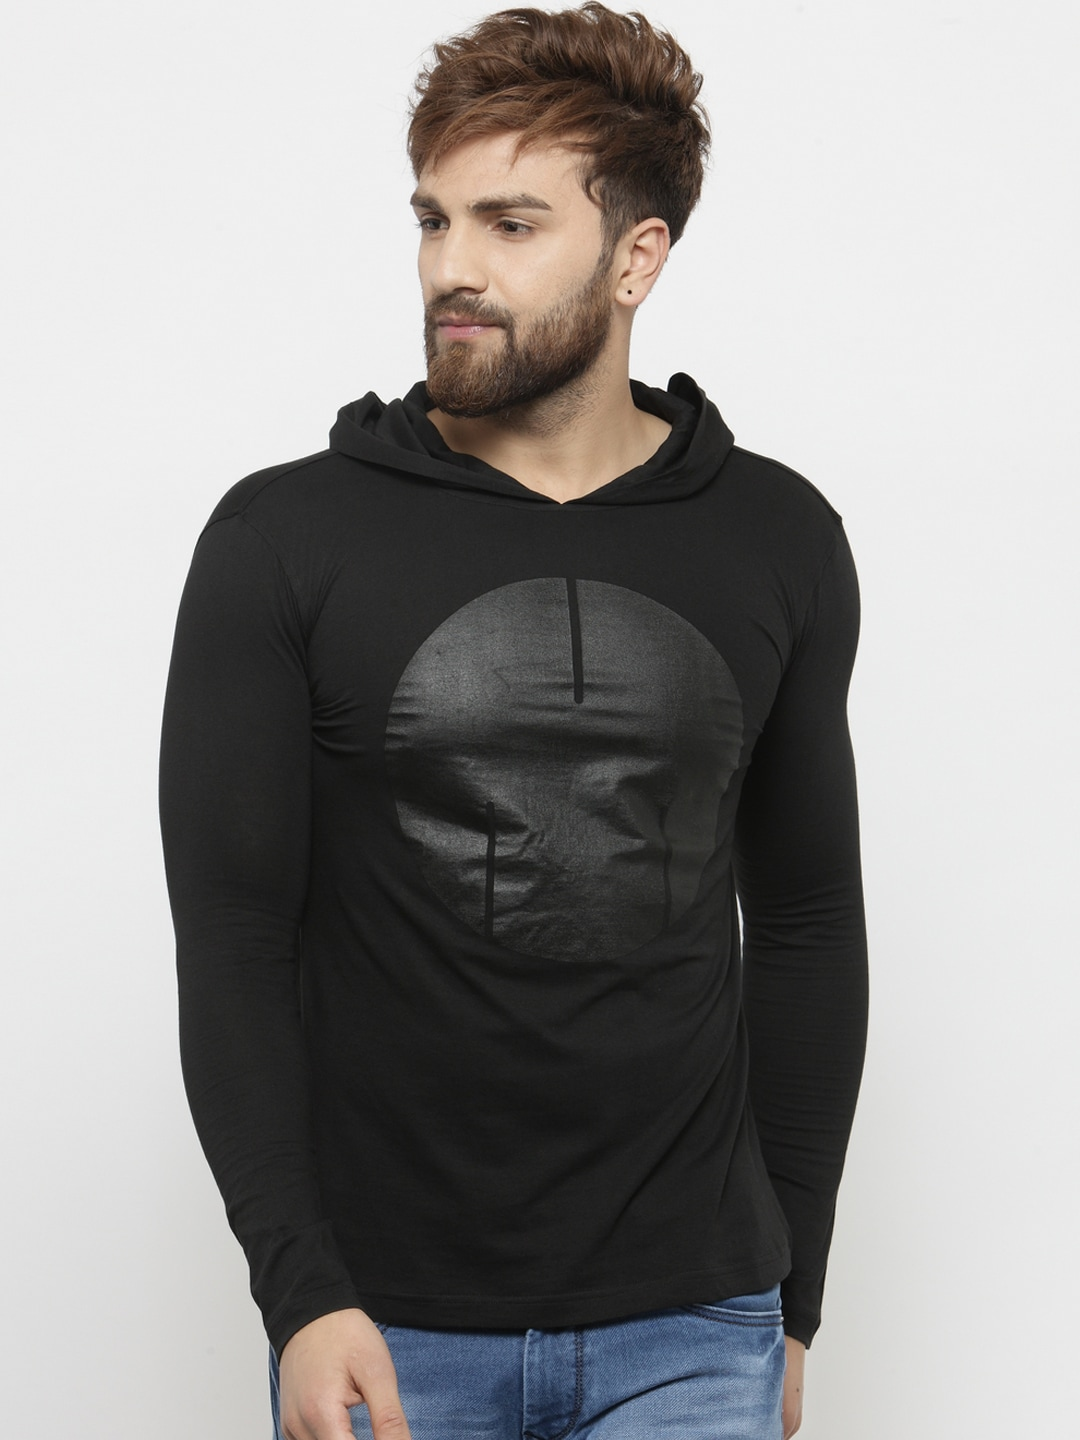 Buy GESPO Black Printed Hood Men's T-shirt At Best Price